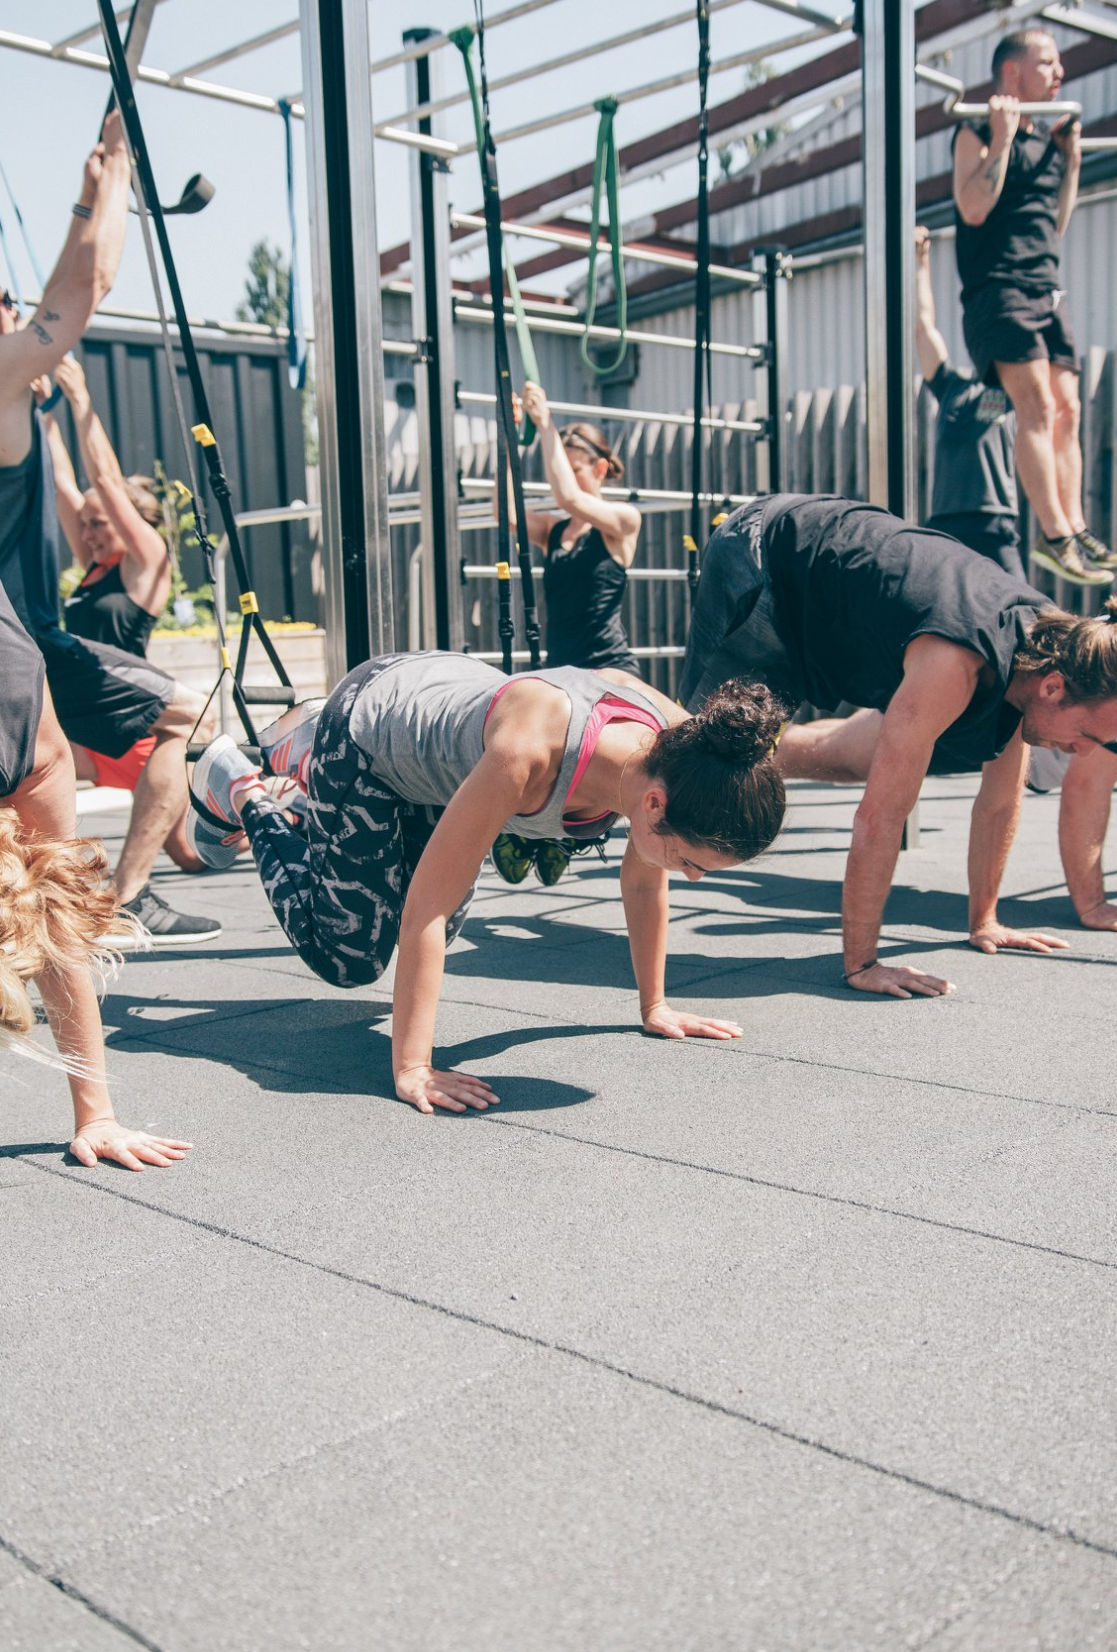 Guys and girls doing different workouts on TRX straps outdoor at adidas runbase Berlin